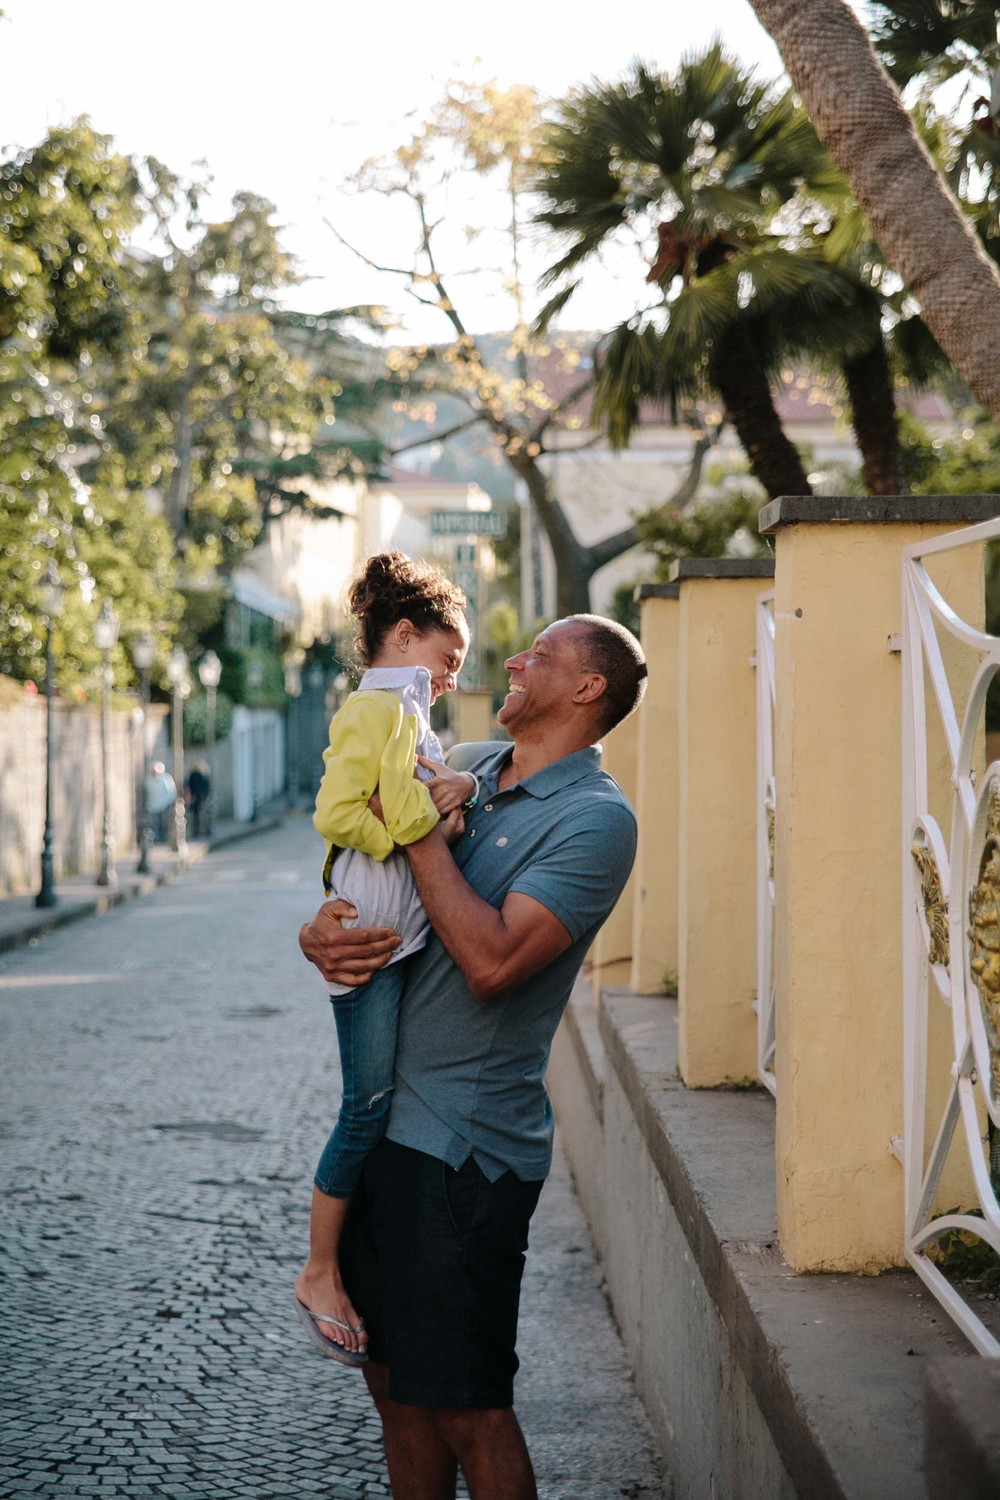 amalfi-coast-italy-family-vacation-photographer